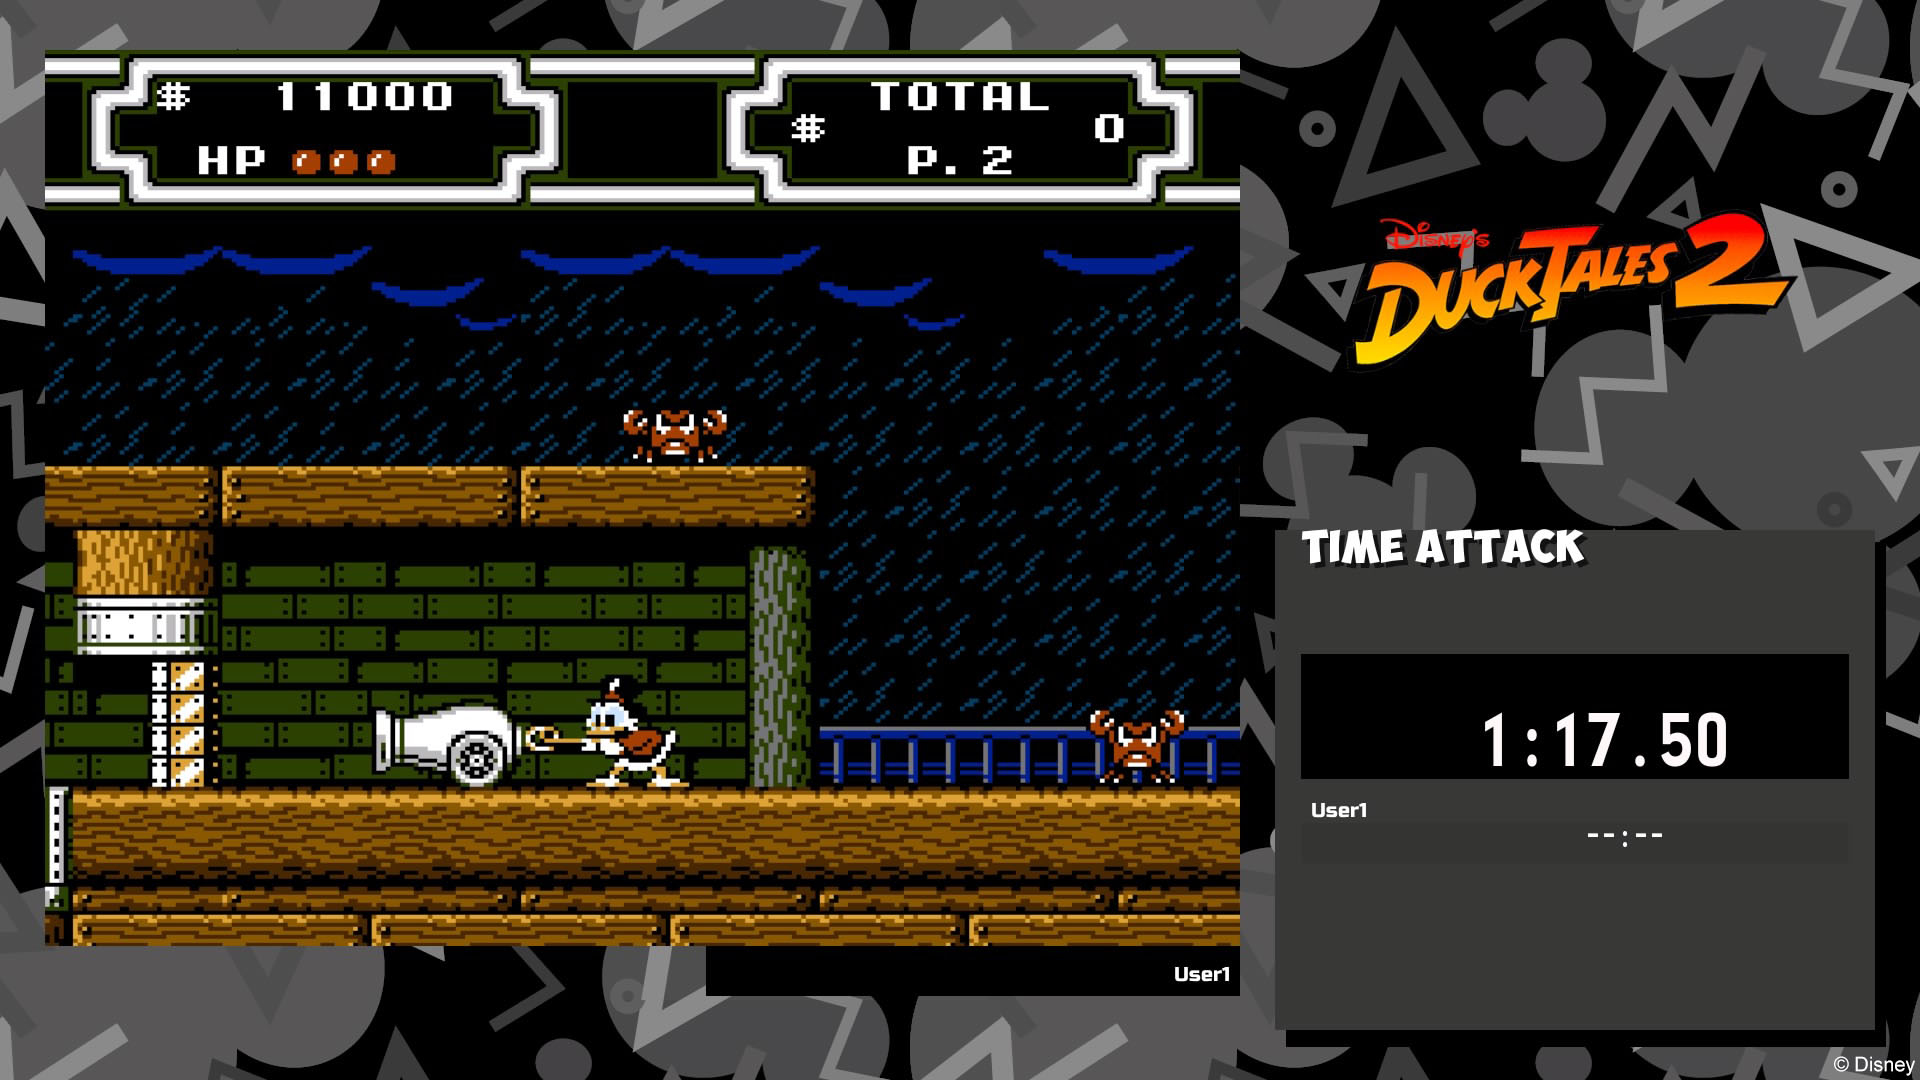 Time_Attack_-_DuckTales_2.jpg